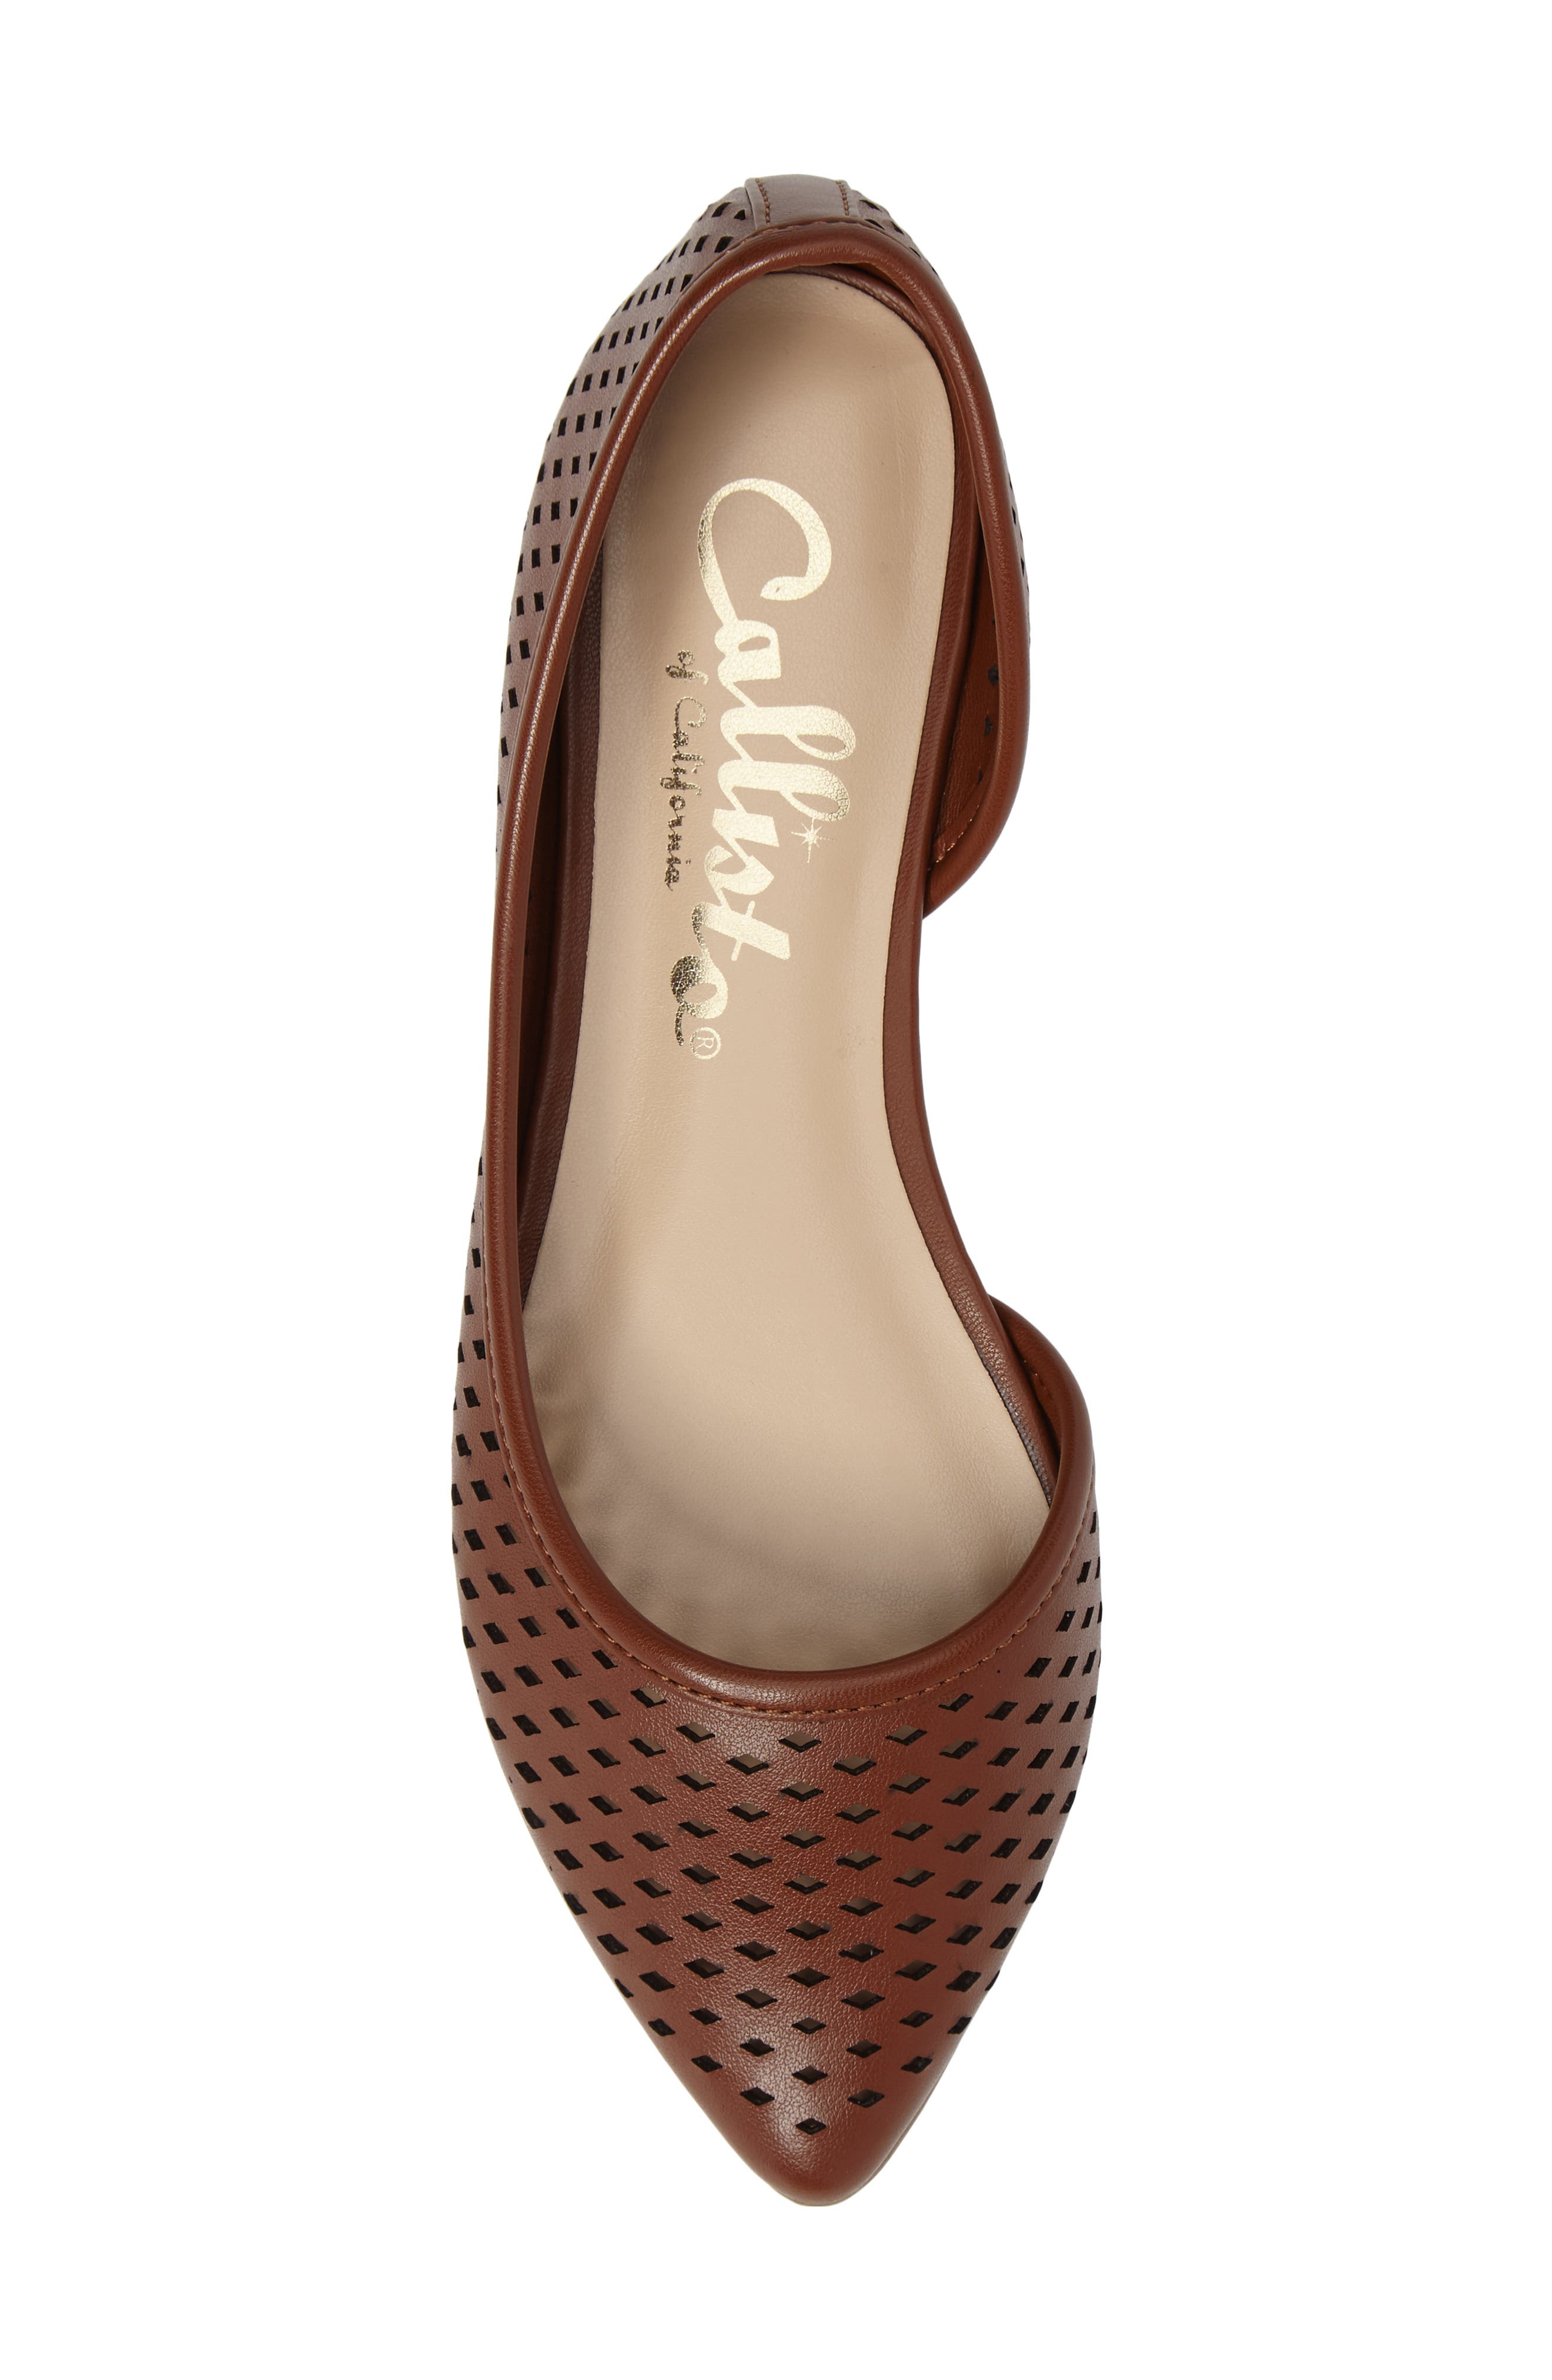 Swiftye Half d'Orsay Flat,                             Alternate thumbnail 5, color,                             Tan Synthetic Leather